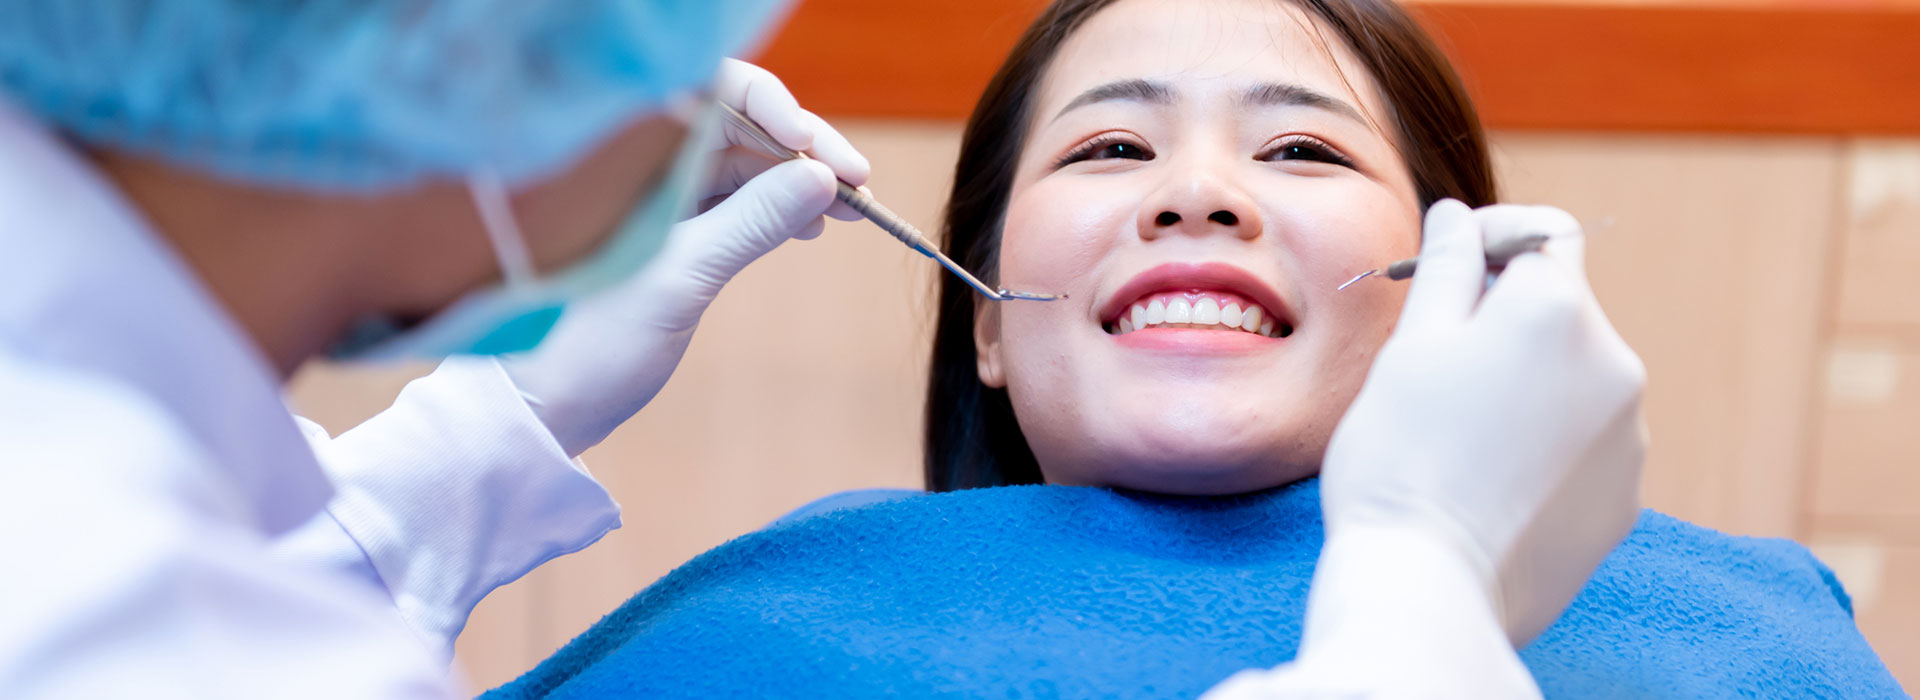 A beautiful woman is smiling after teeth whitening